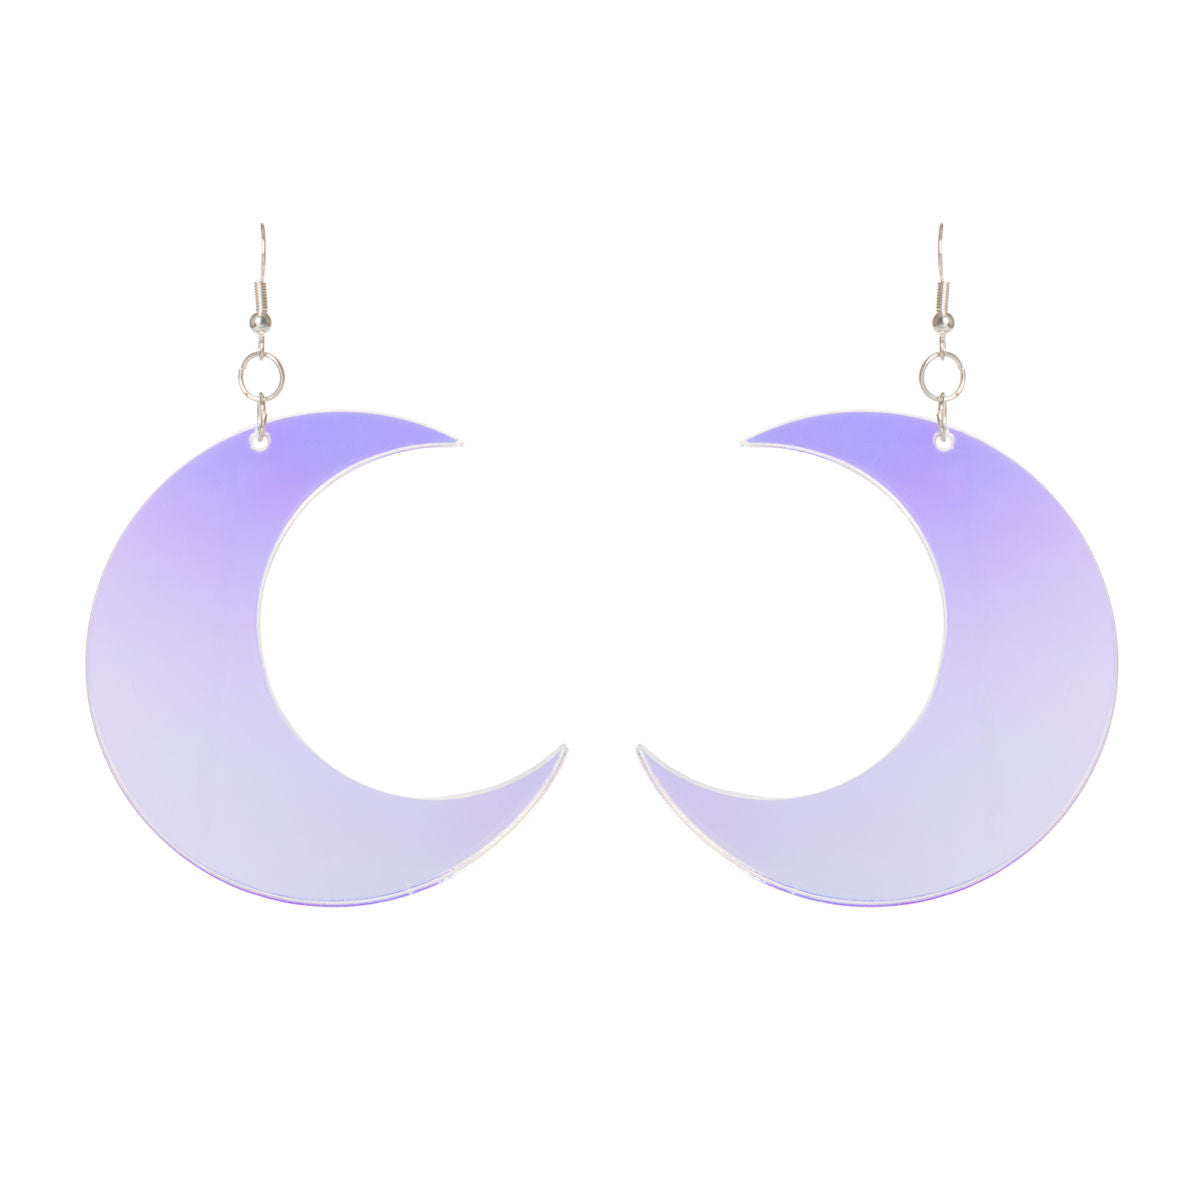 Sugar & Vice Crescent Moon Earrings 1